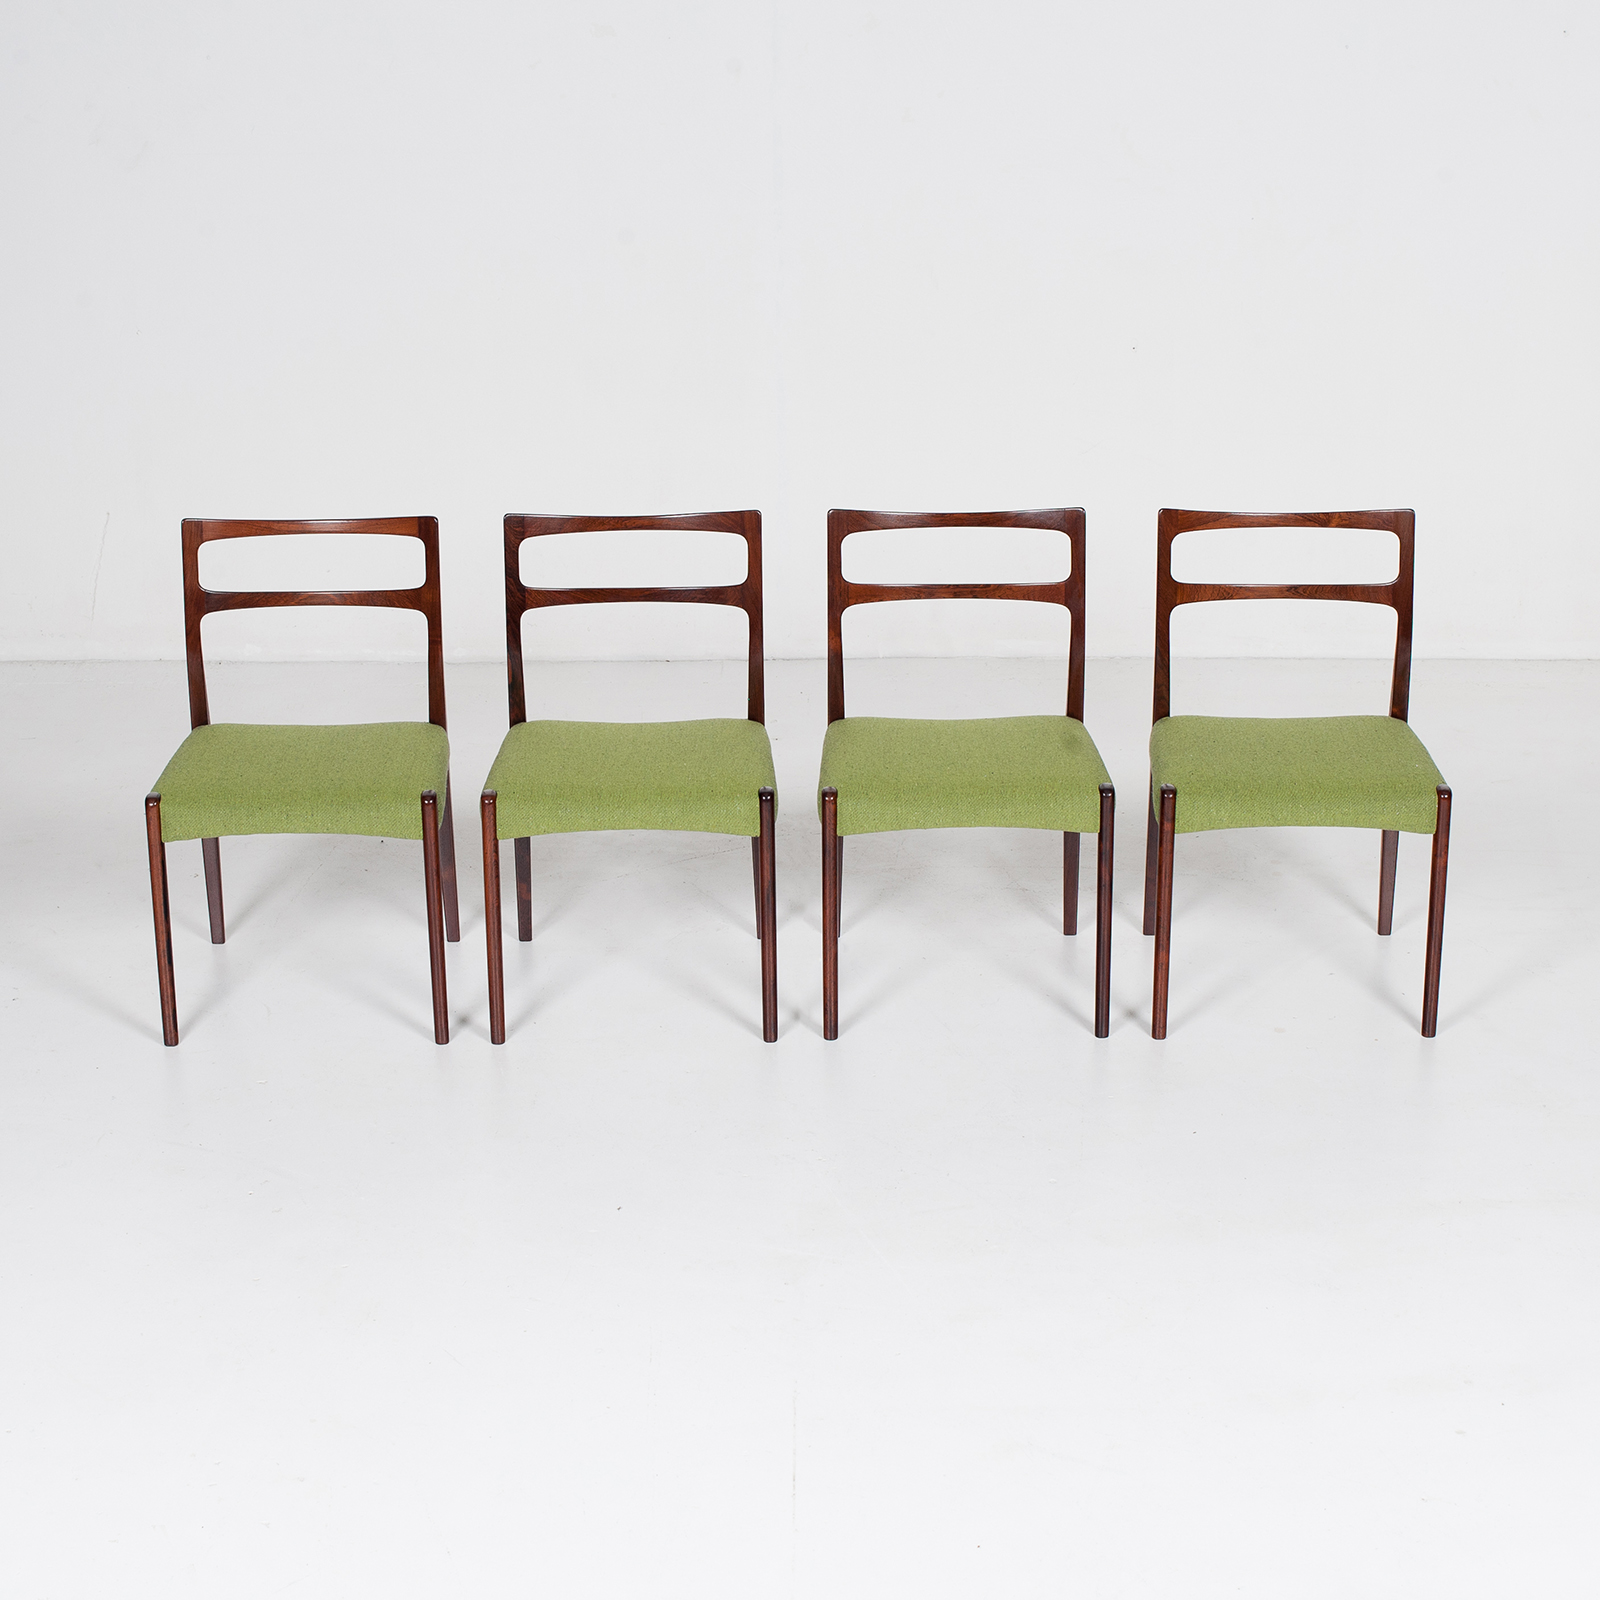 Set Of 4 Ladder Back Dining Chairs By Niels Moller In Rosewood, 1960s, Denmark34